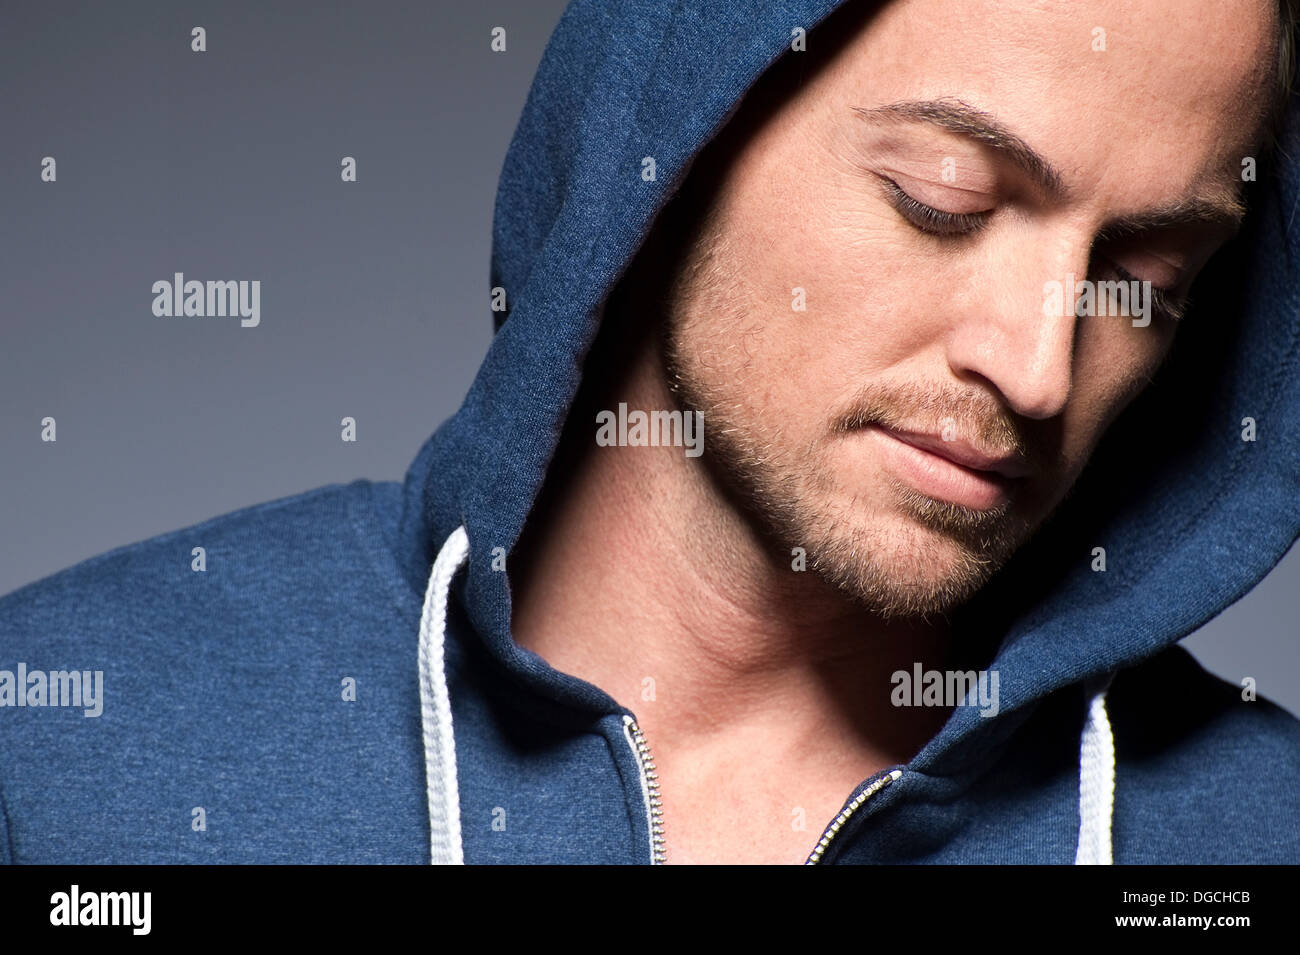 Young man wearing hood and looking down - Stock Image